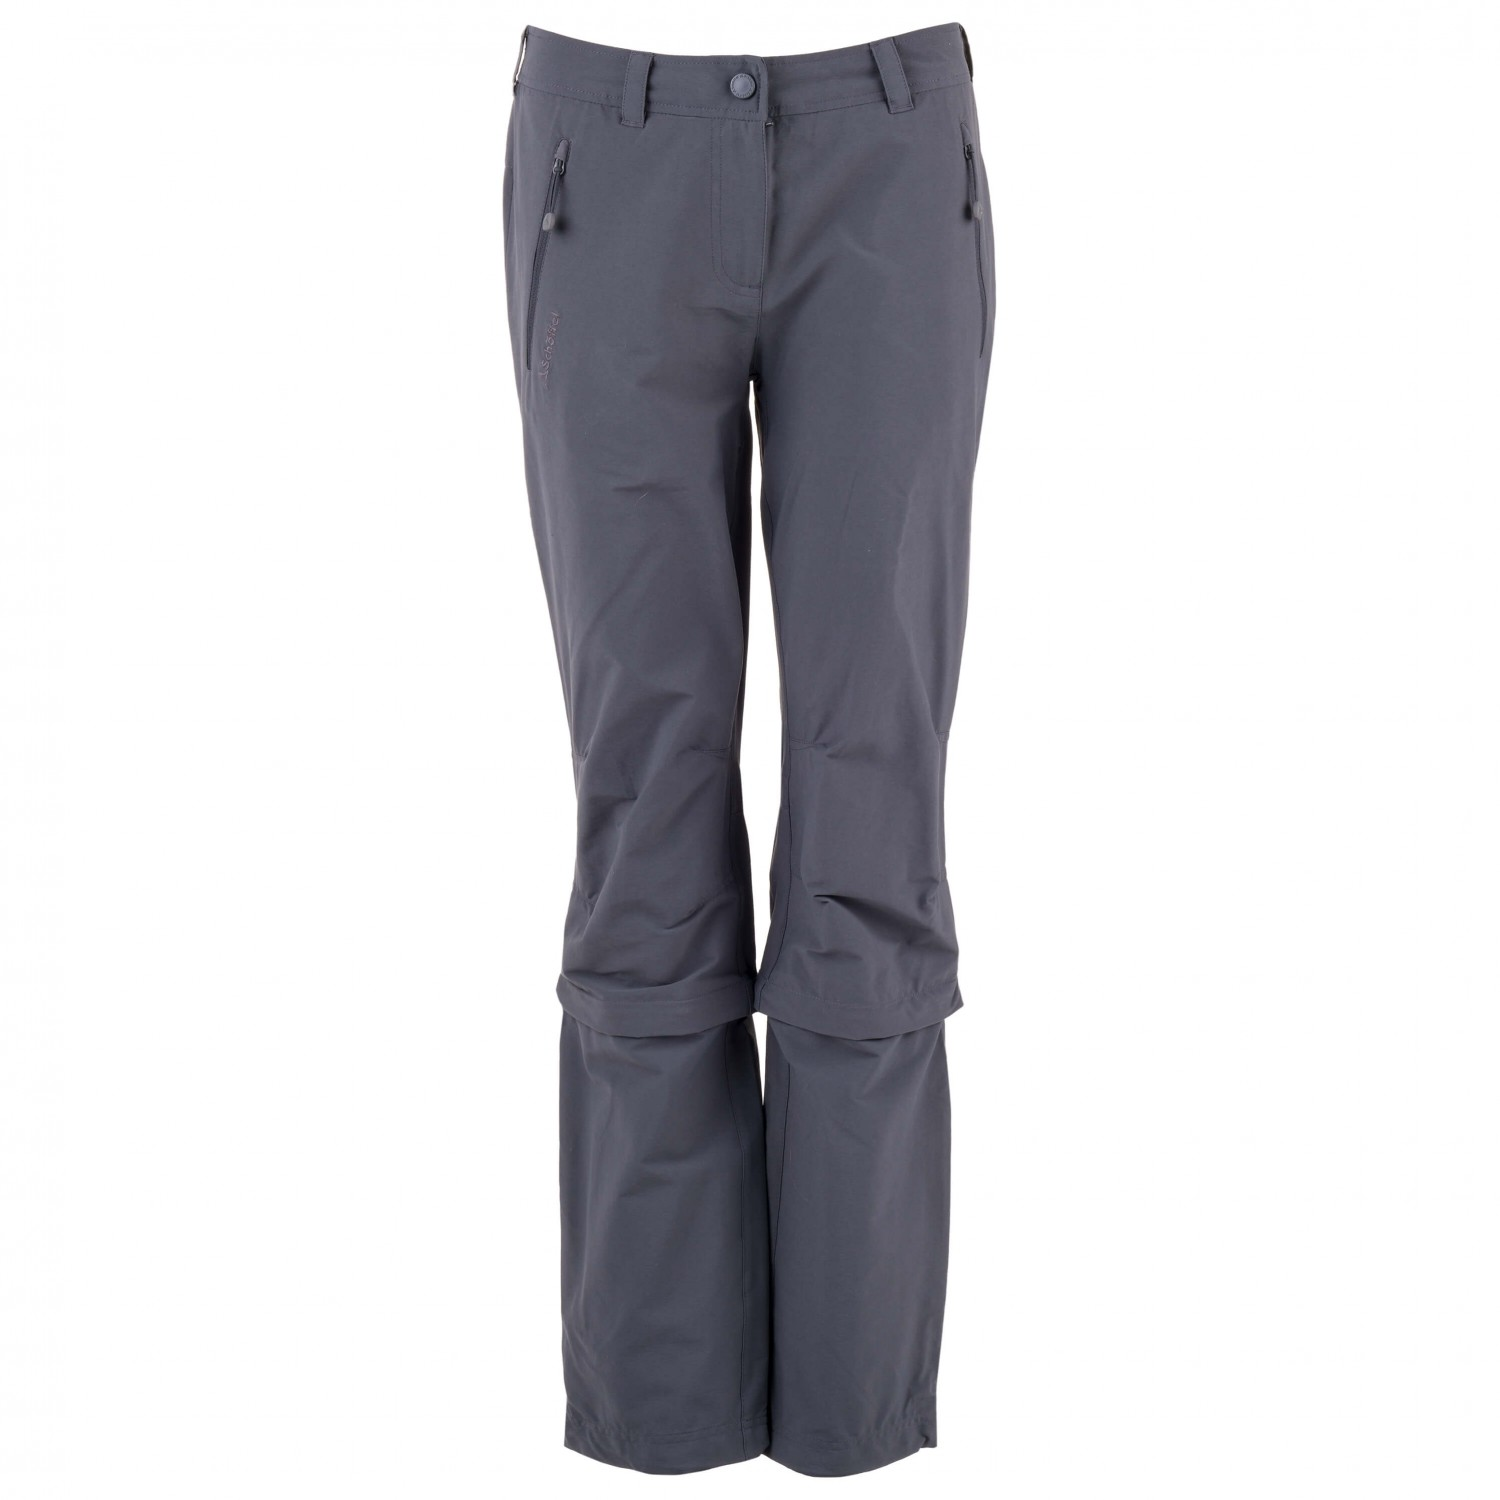 Charcoal18 Shorteu Zip Engadin Women's Trekking Pants Off Pantalon De Schöffel ZiPkuOTX